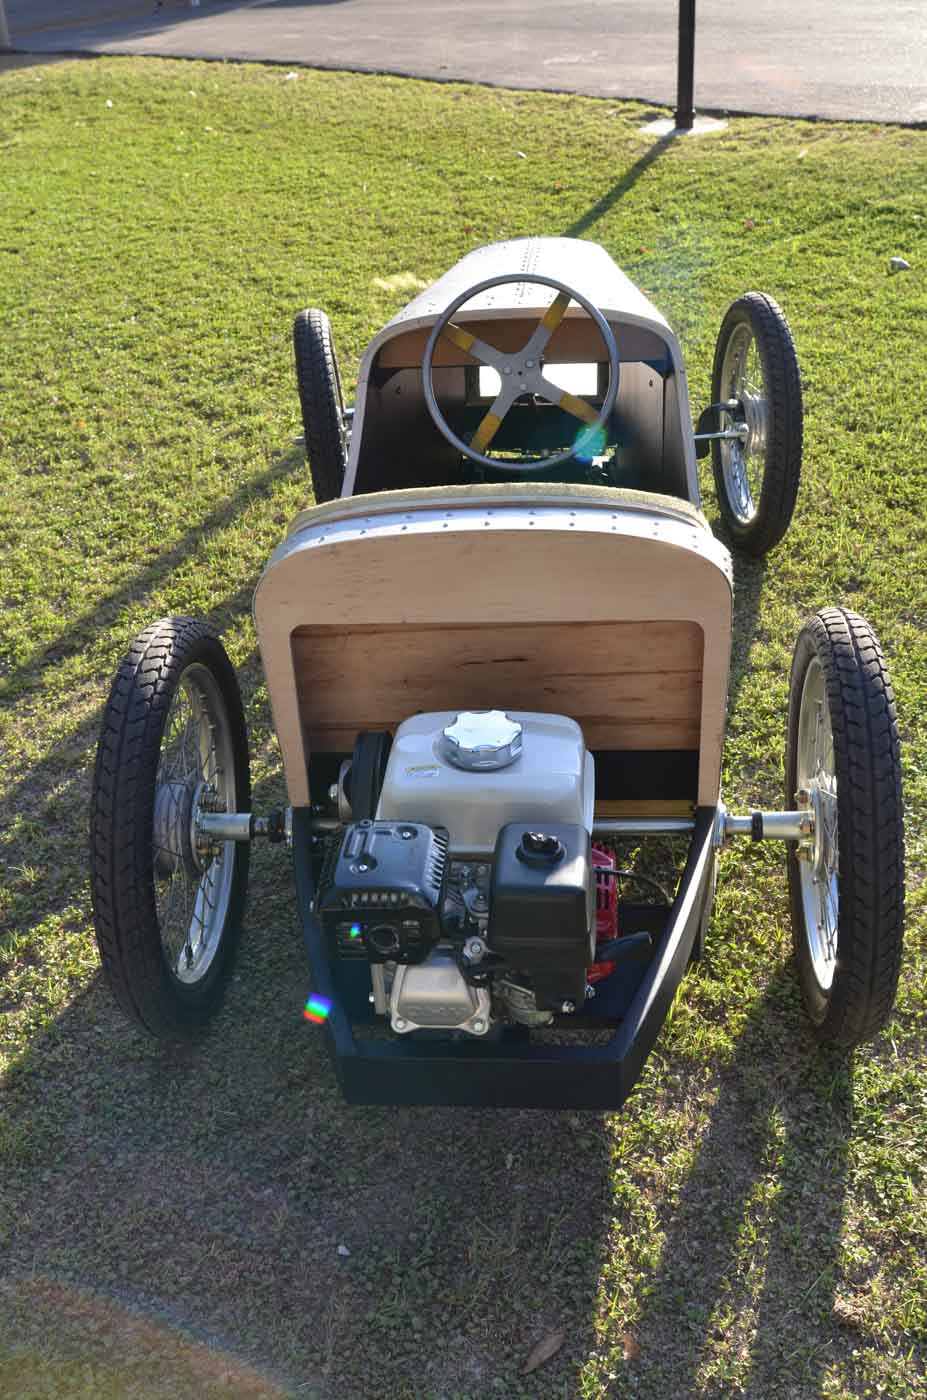 Cheap Fun And Fast You Re Going To Want A Cyclekart